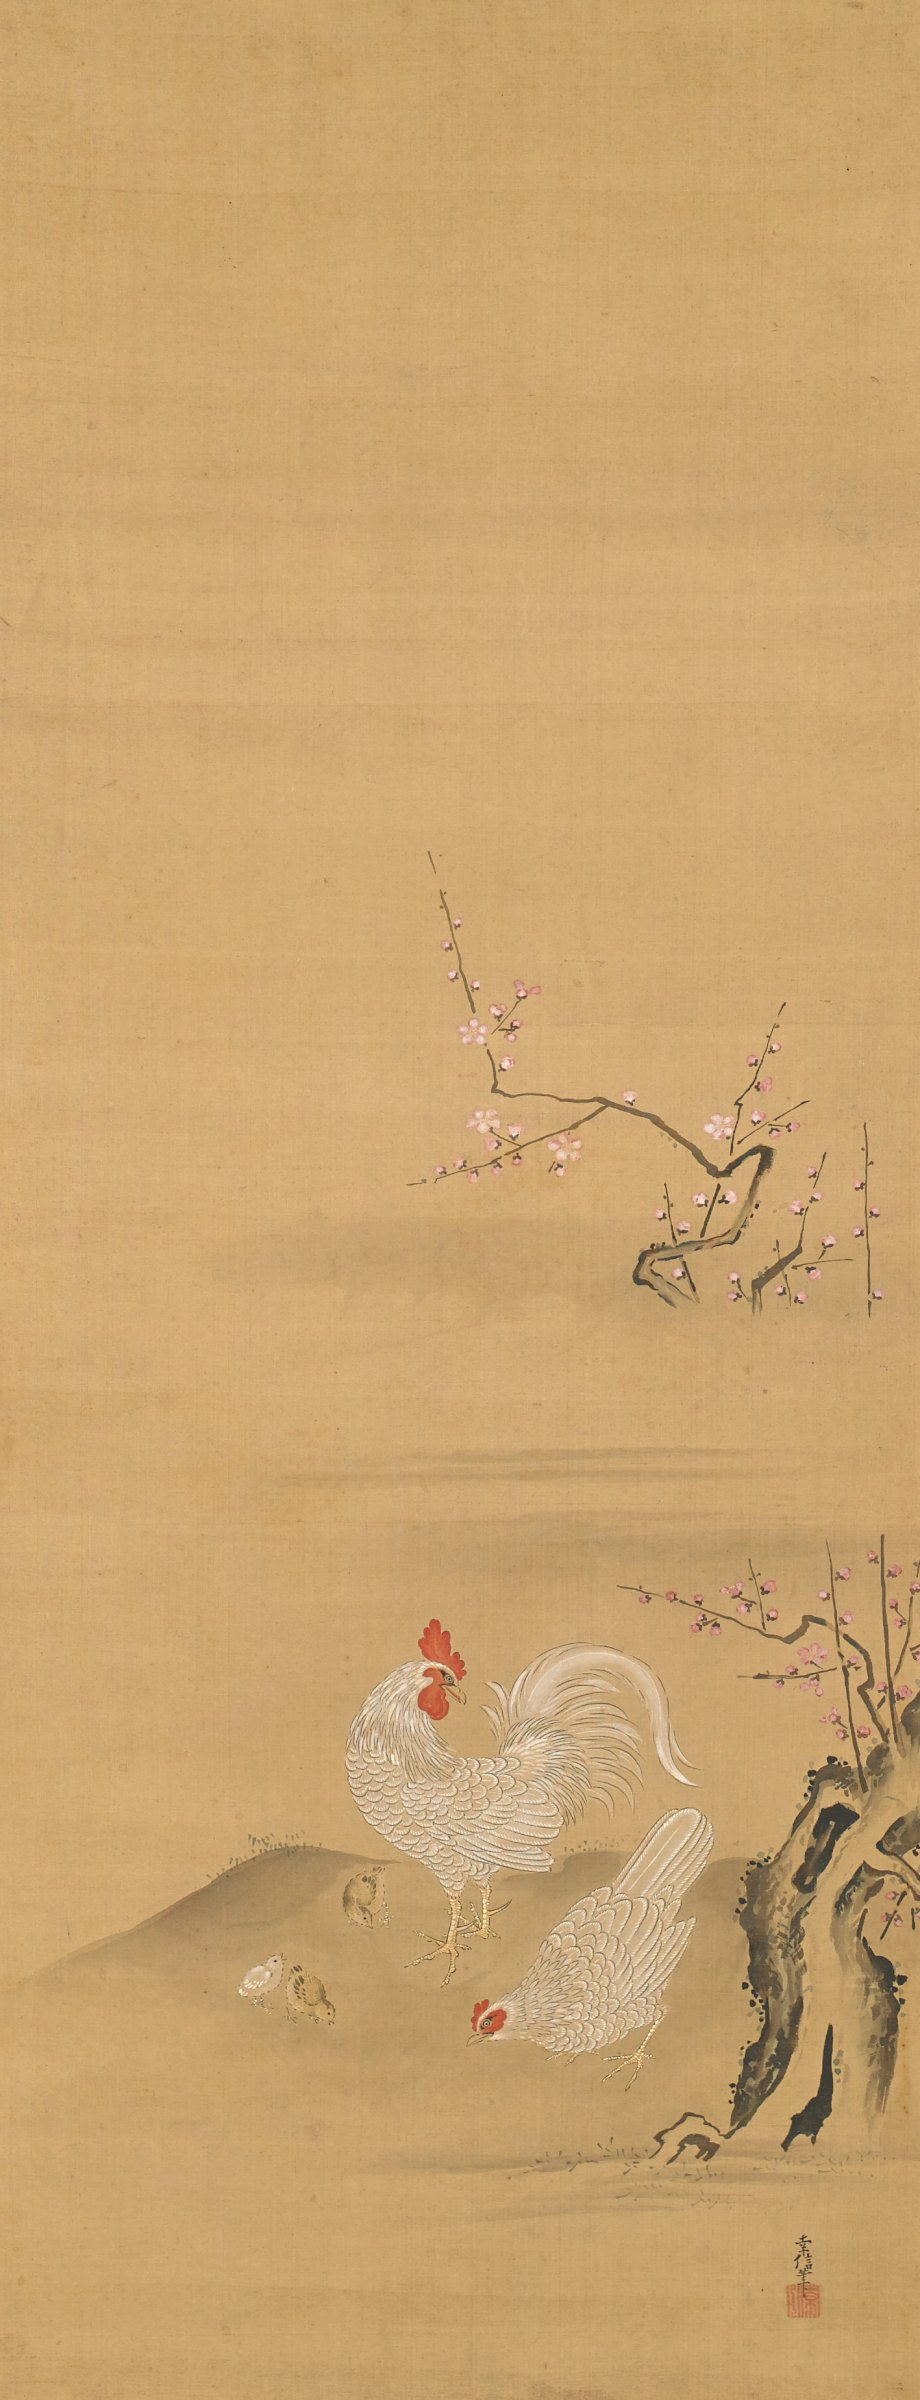 Pheasant, Hen, and Chicks, Attributed to Kano Tsunenobu, ink and color on silk